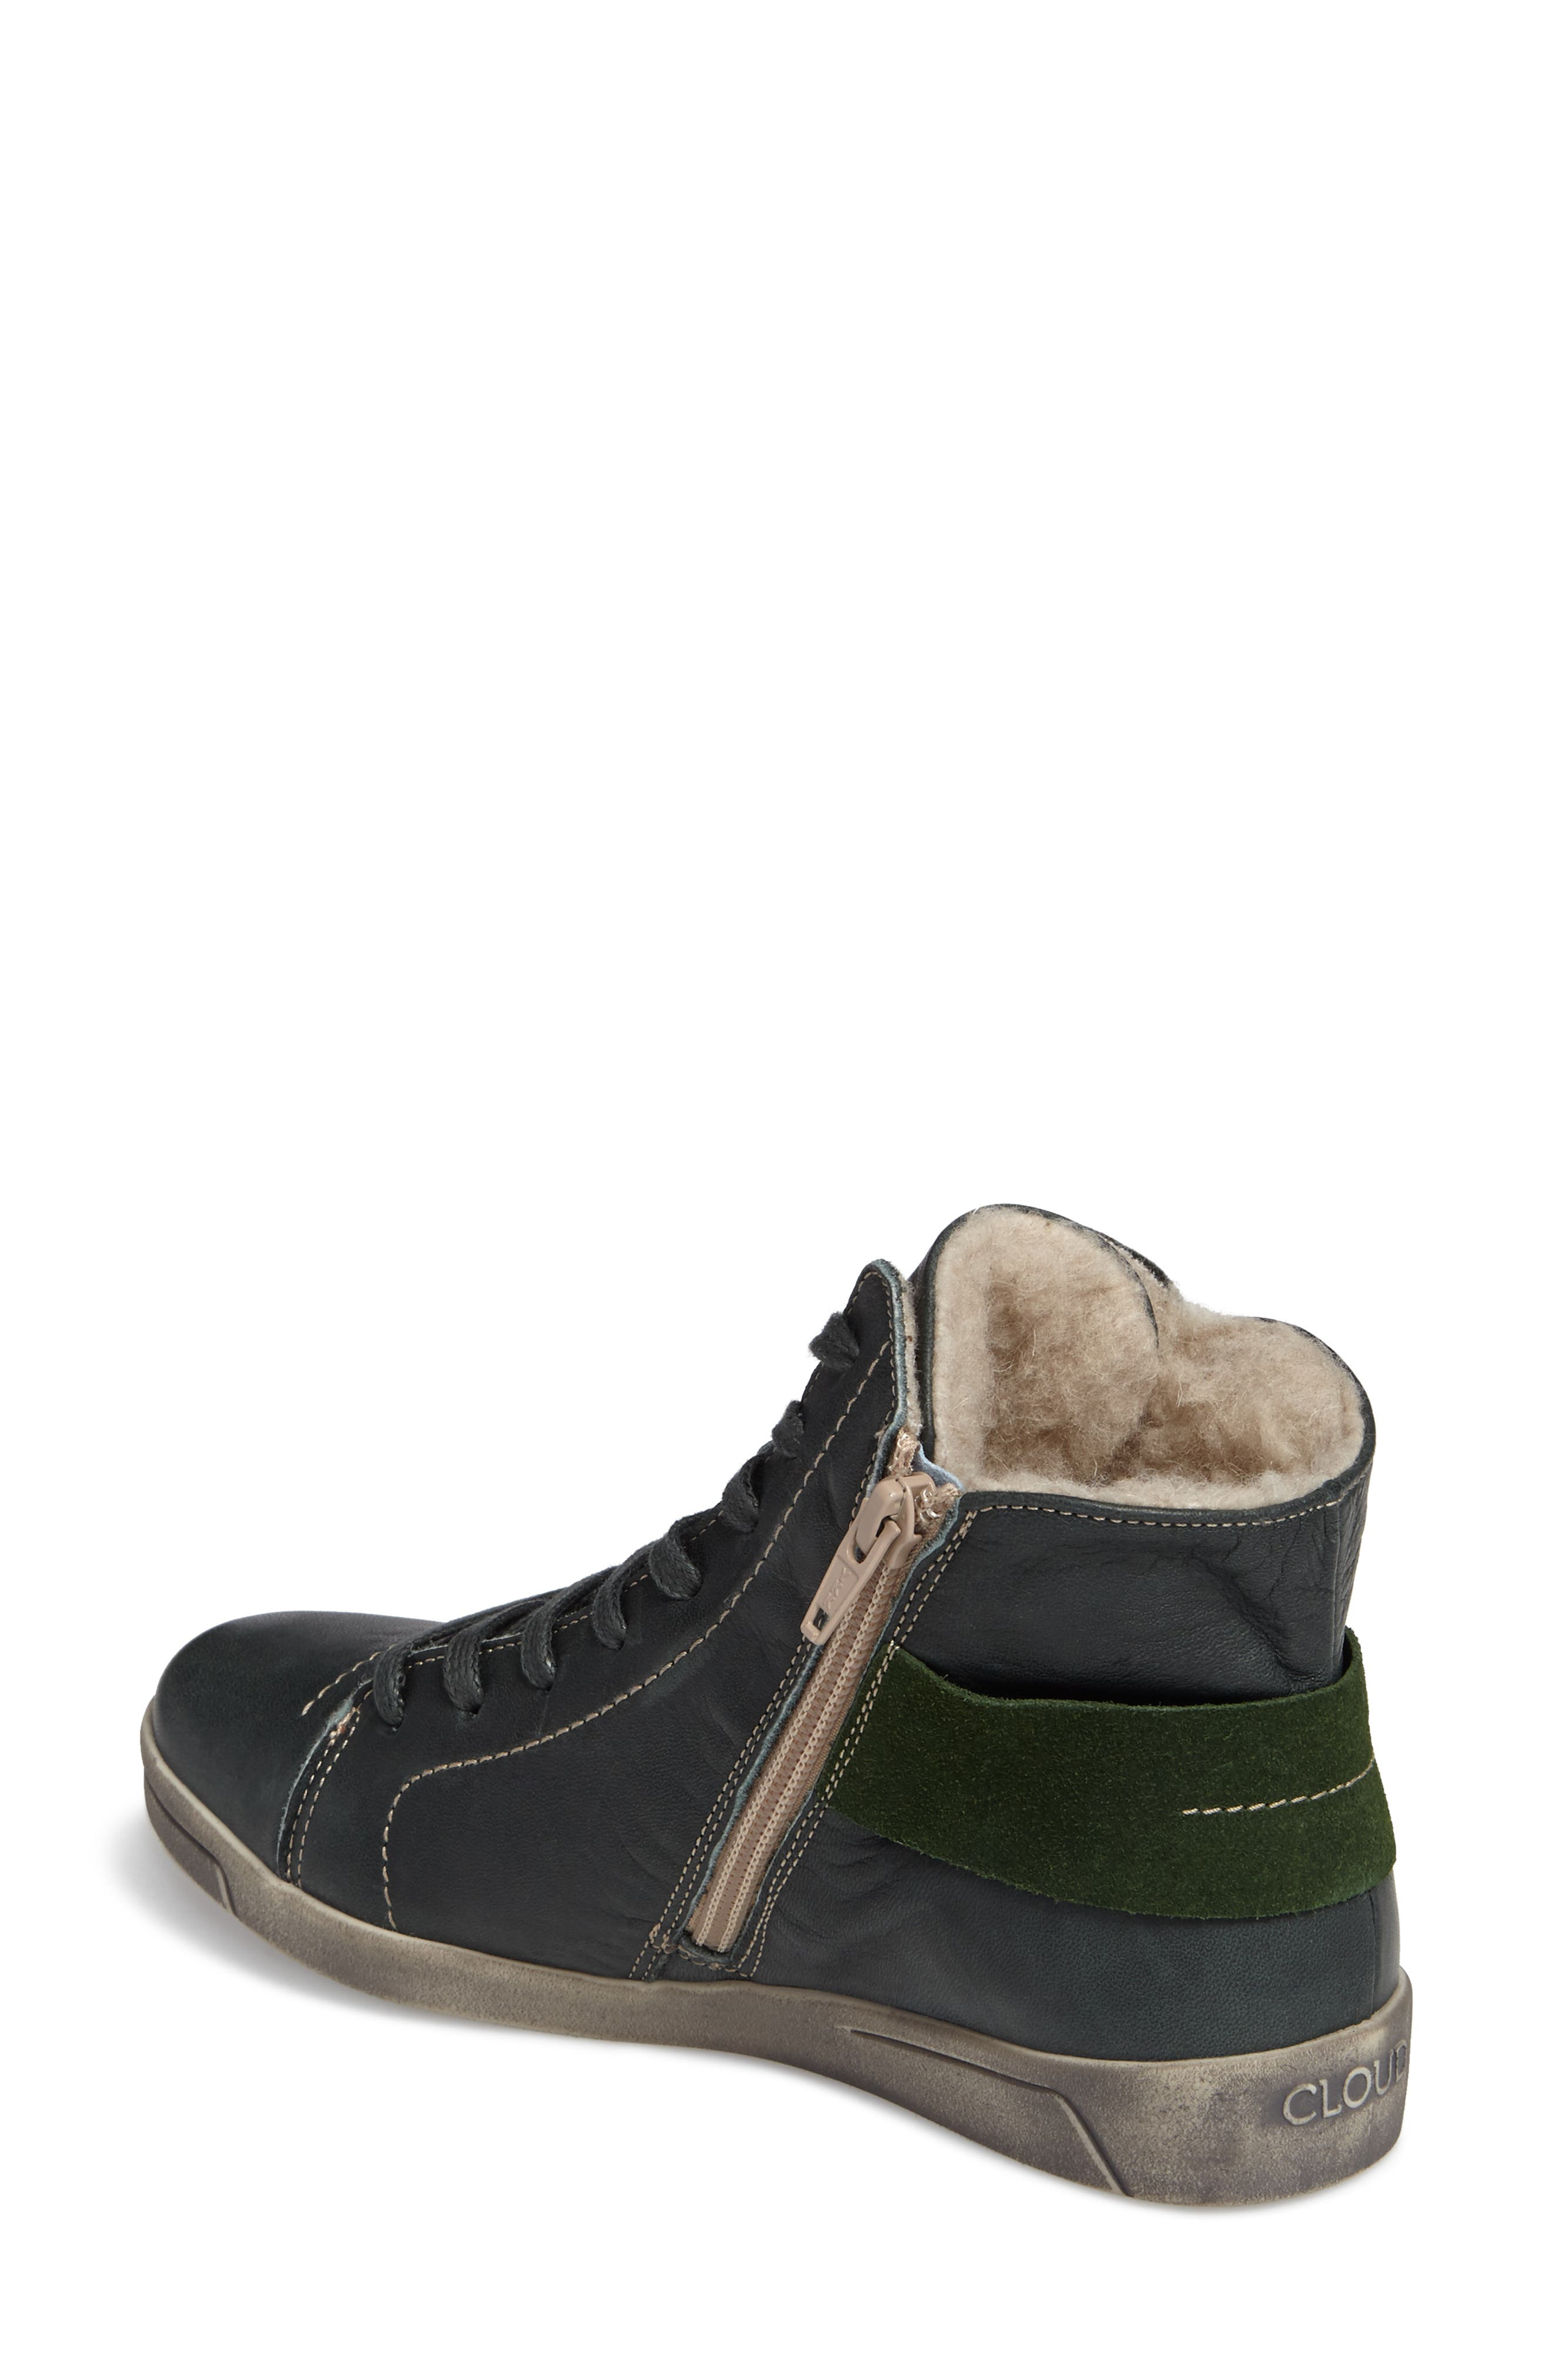 Aline Wool Lined Bootie,                             Alternate thumbnail 2, color,                             GREEN LEATHER